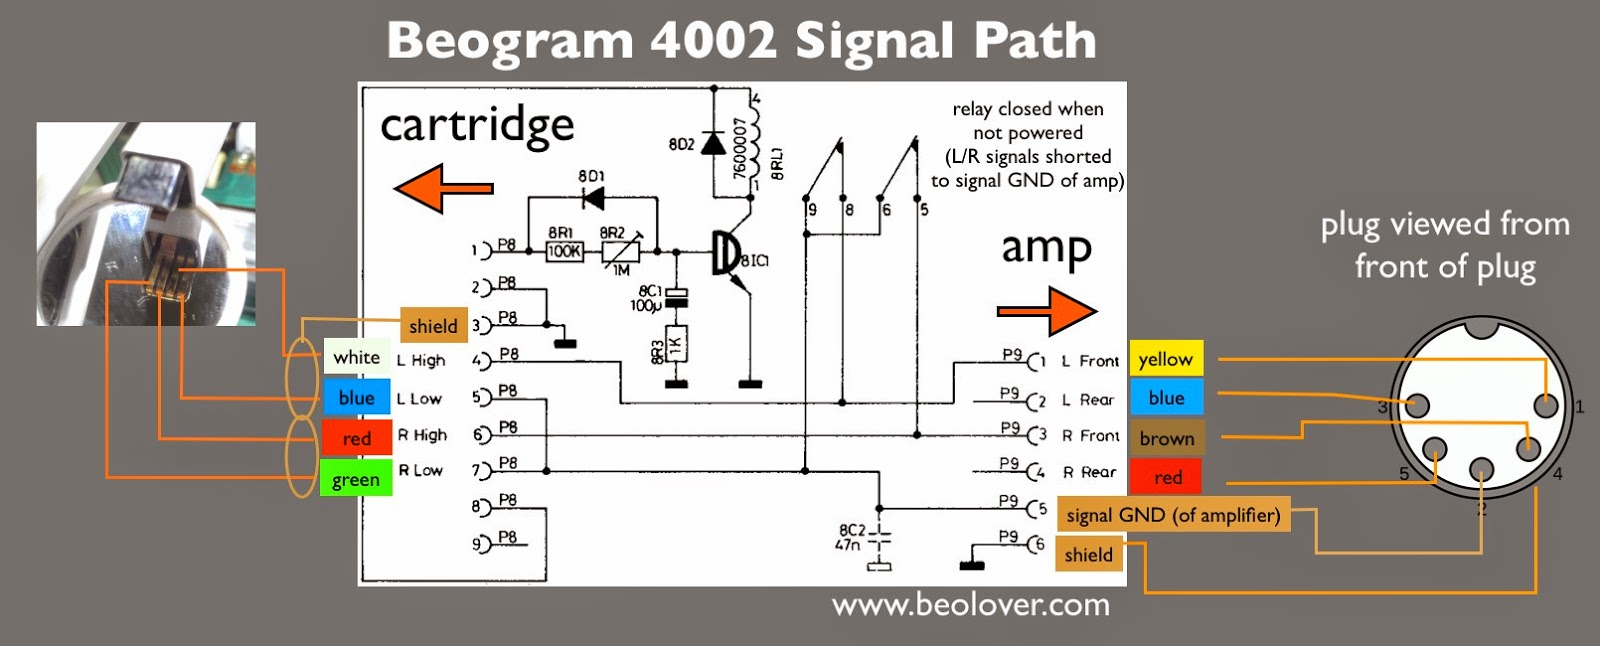 Beolover  Beogram 4002  Signal Path Between Din5 Plug And